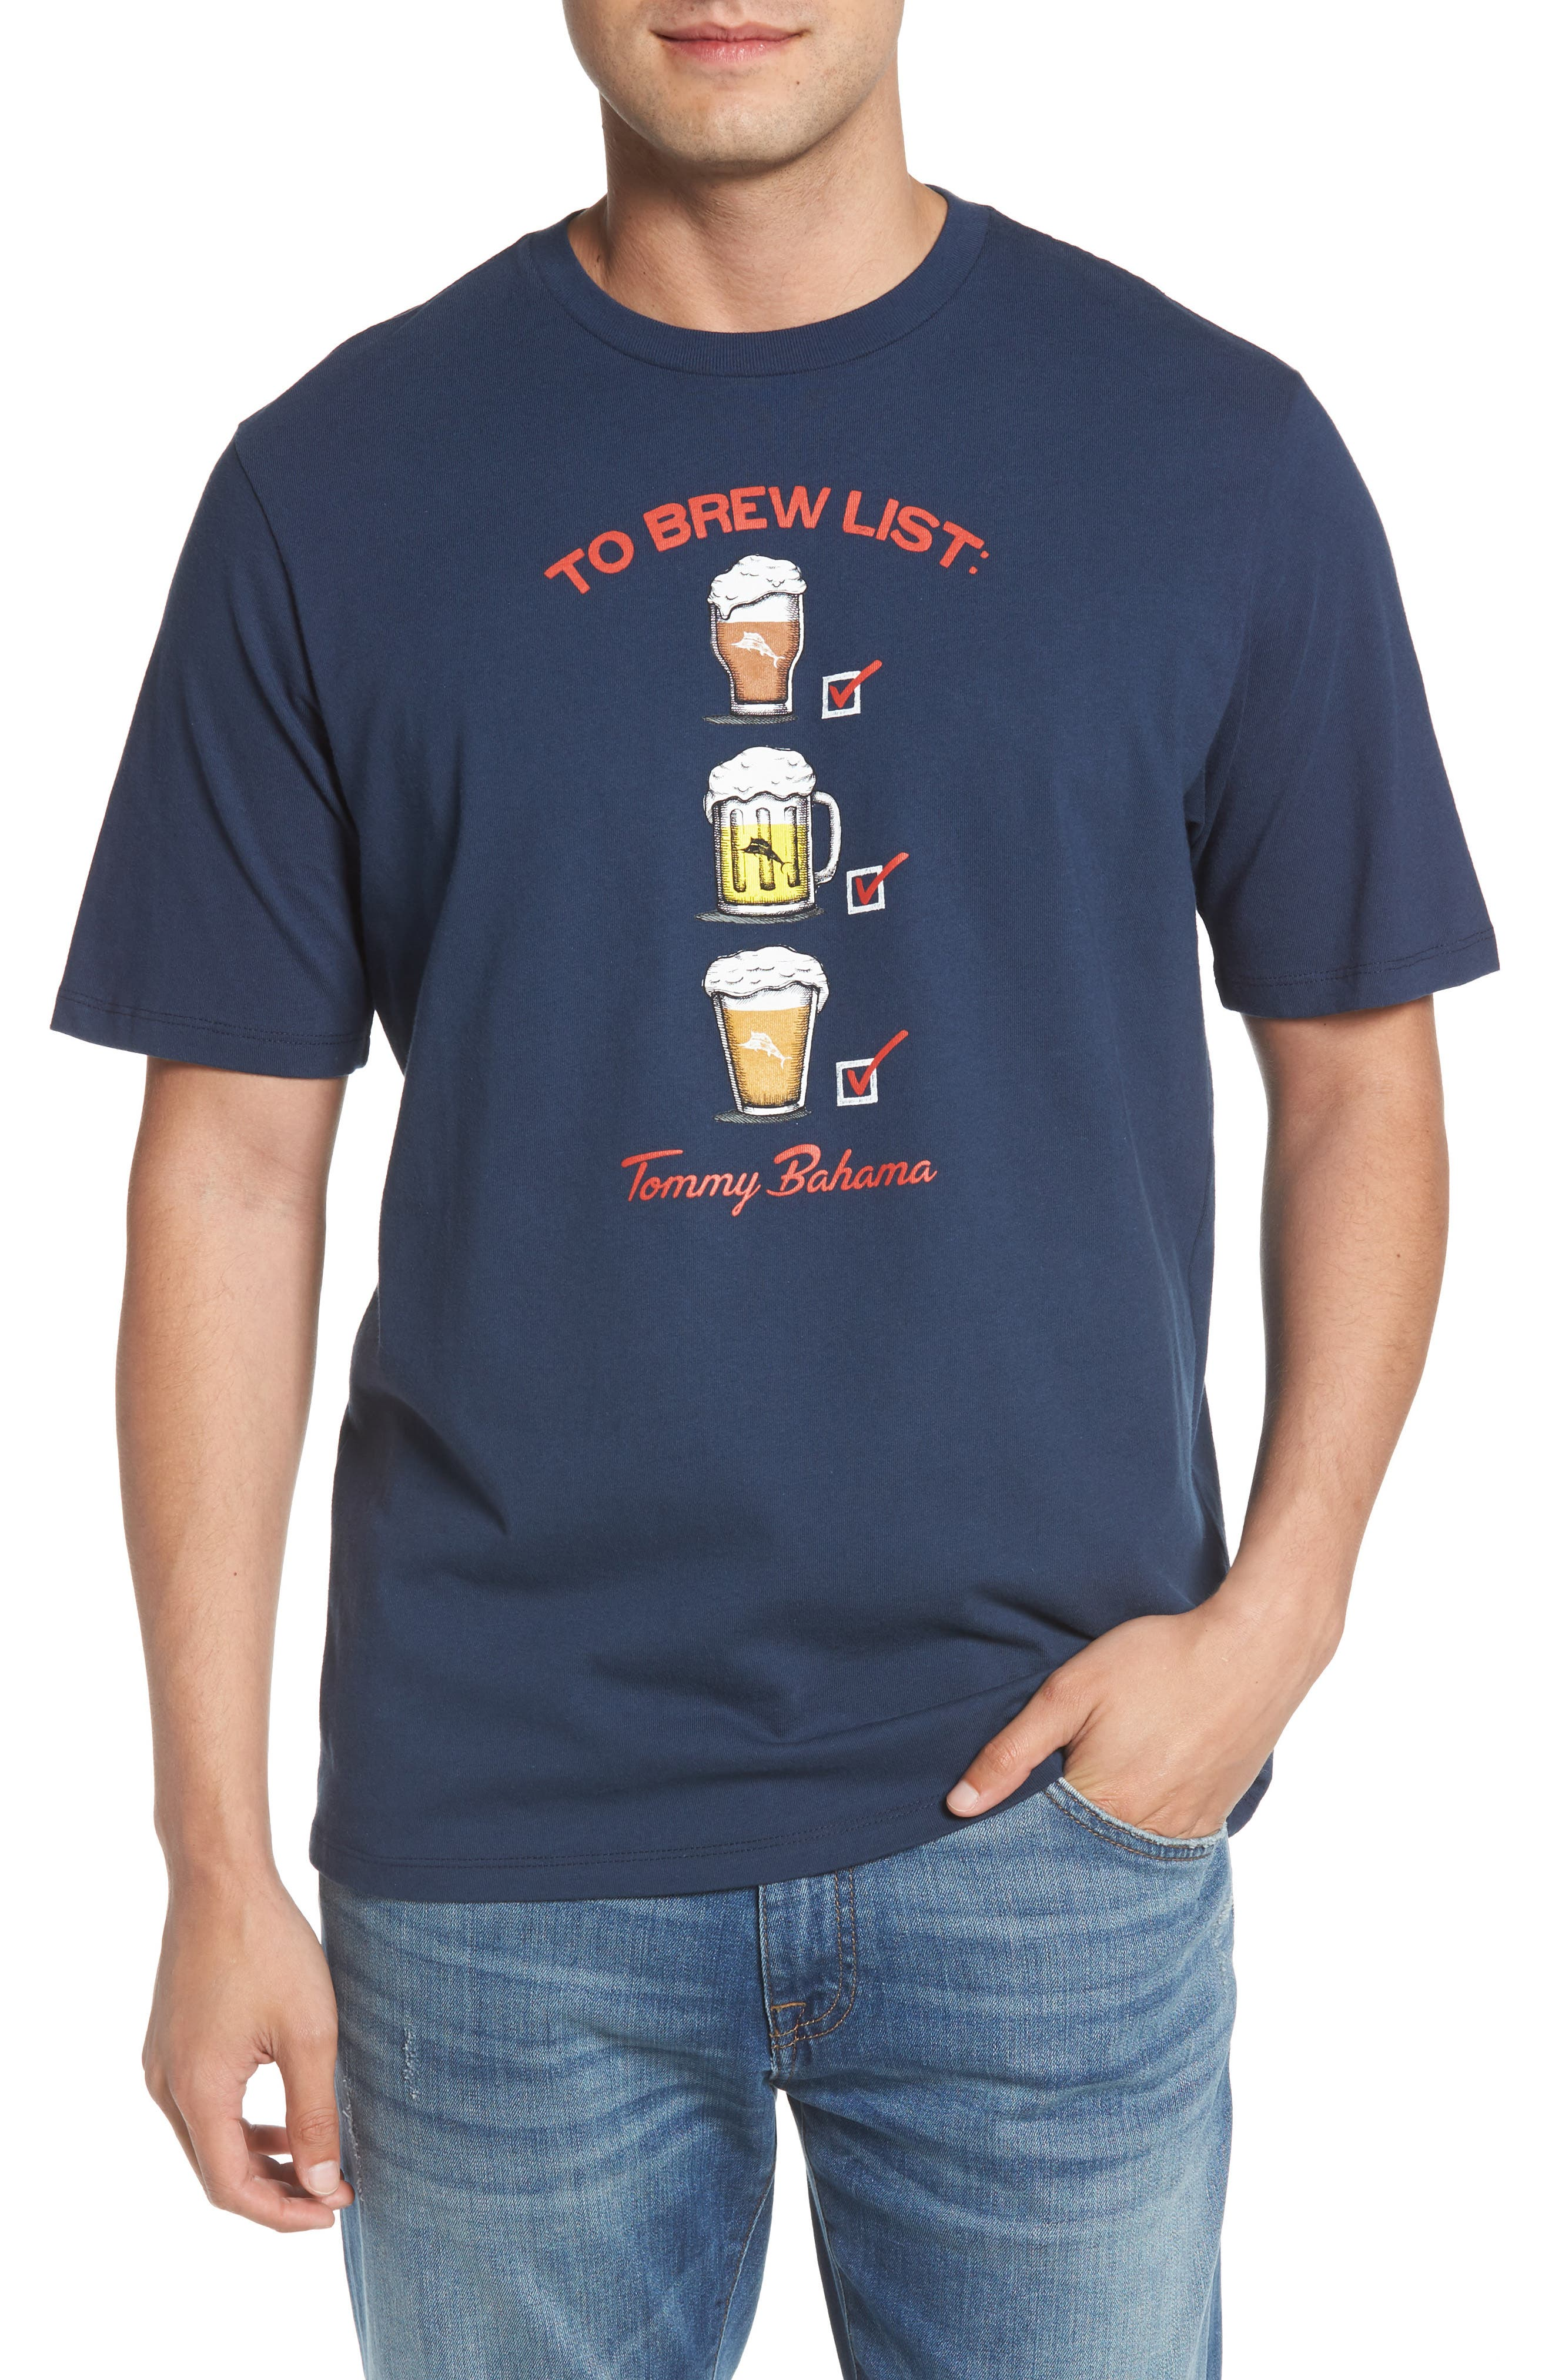 To Brew List T-Shirt,                         Main,                         color, 400